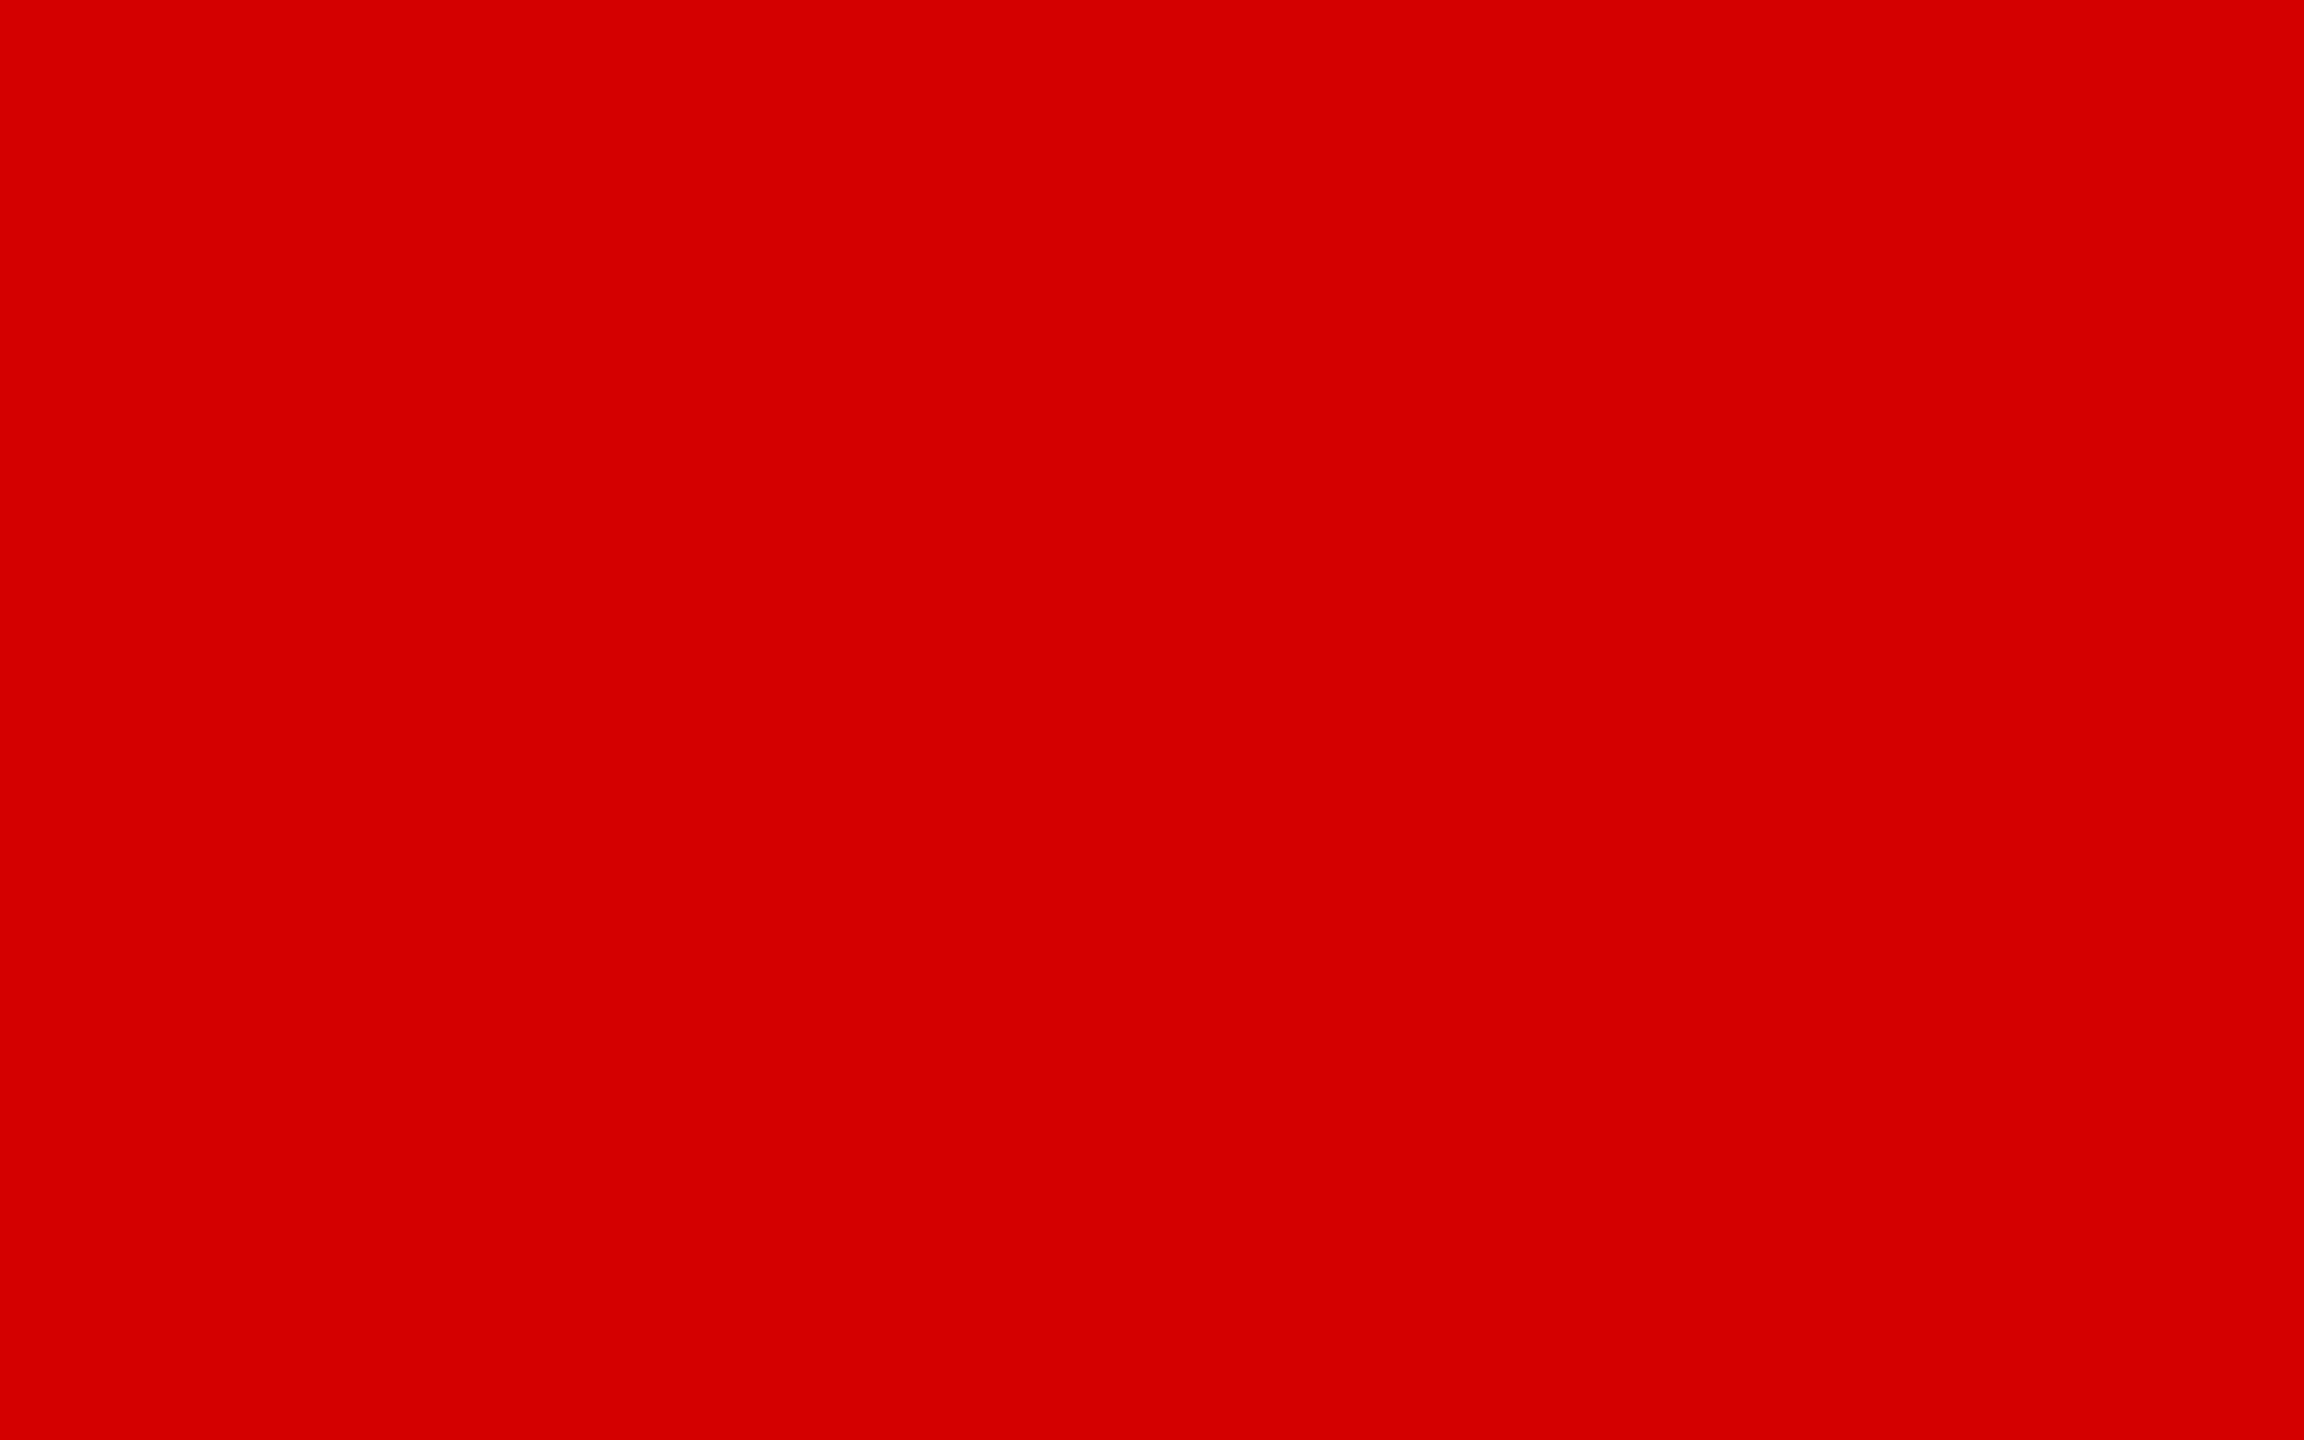 2304x1440 Rosso Corsa Solid Color Background